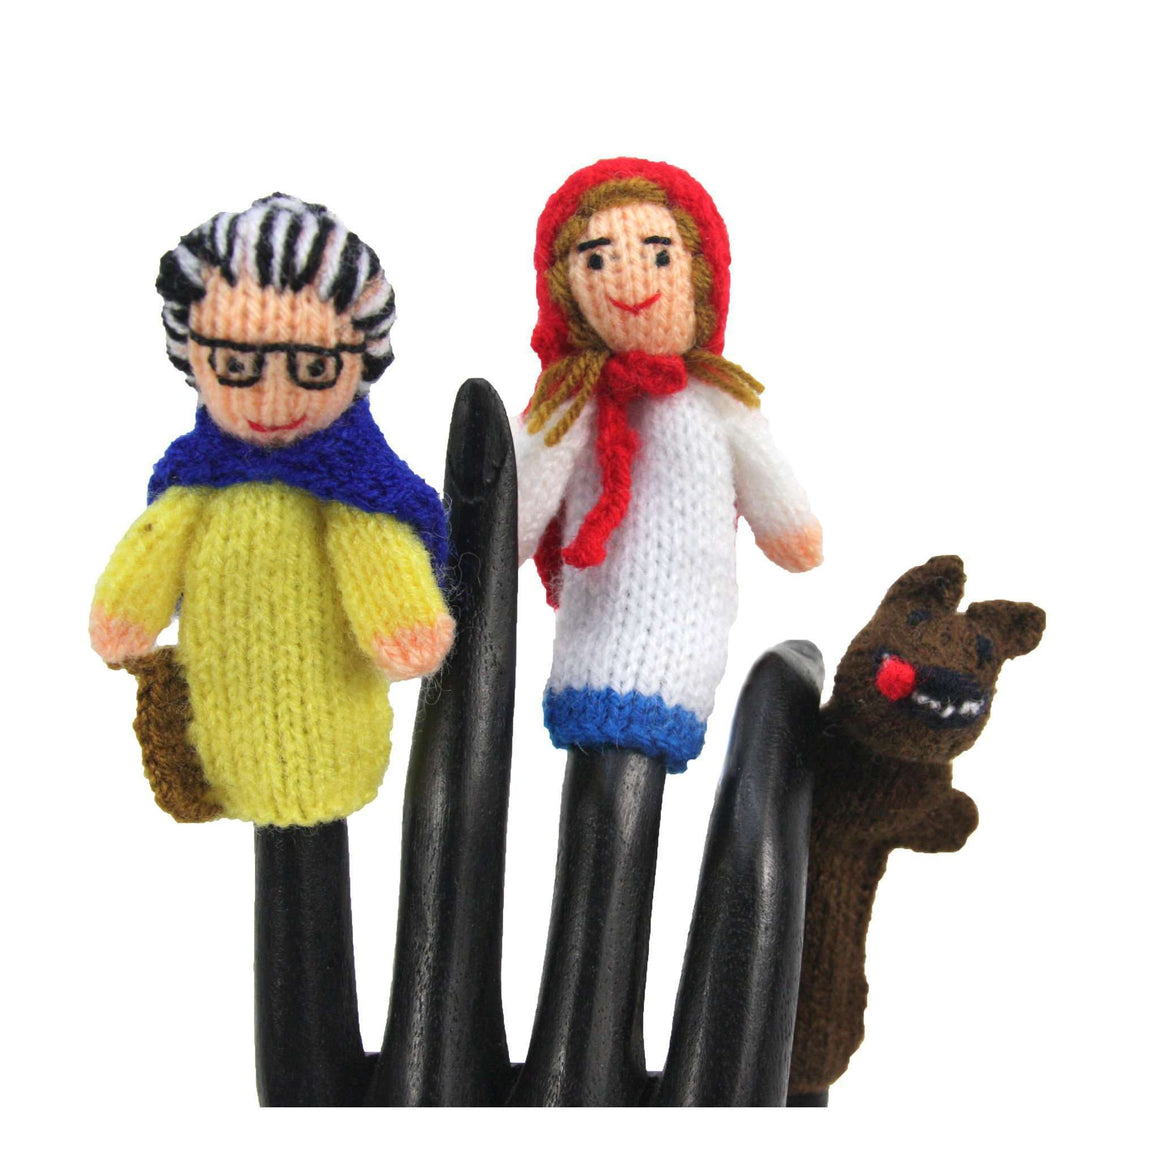 Red Riding Hood Finger Puppet Set of 3 - Global Handmade Hope CoolHatcher at TheArtOfLiving.Earth